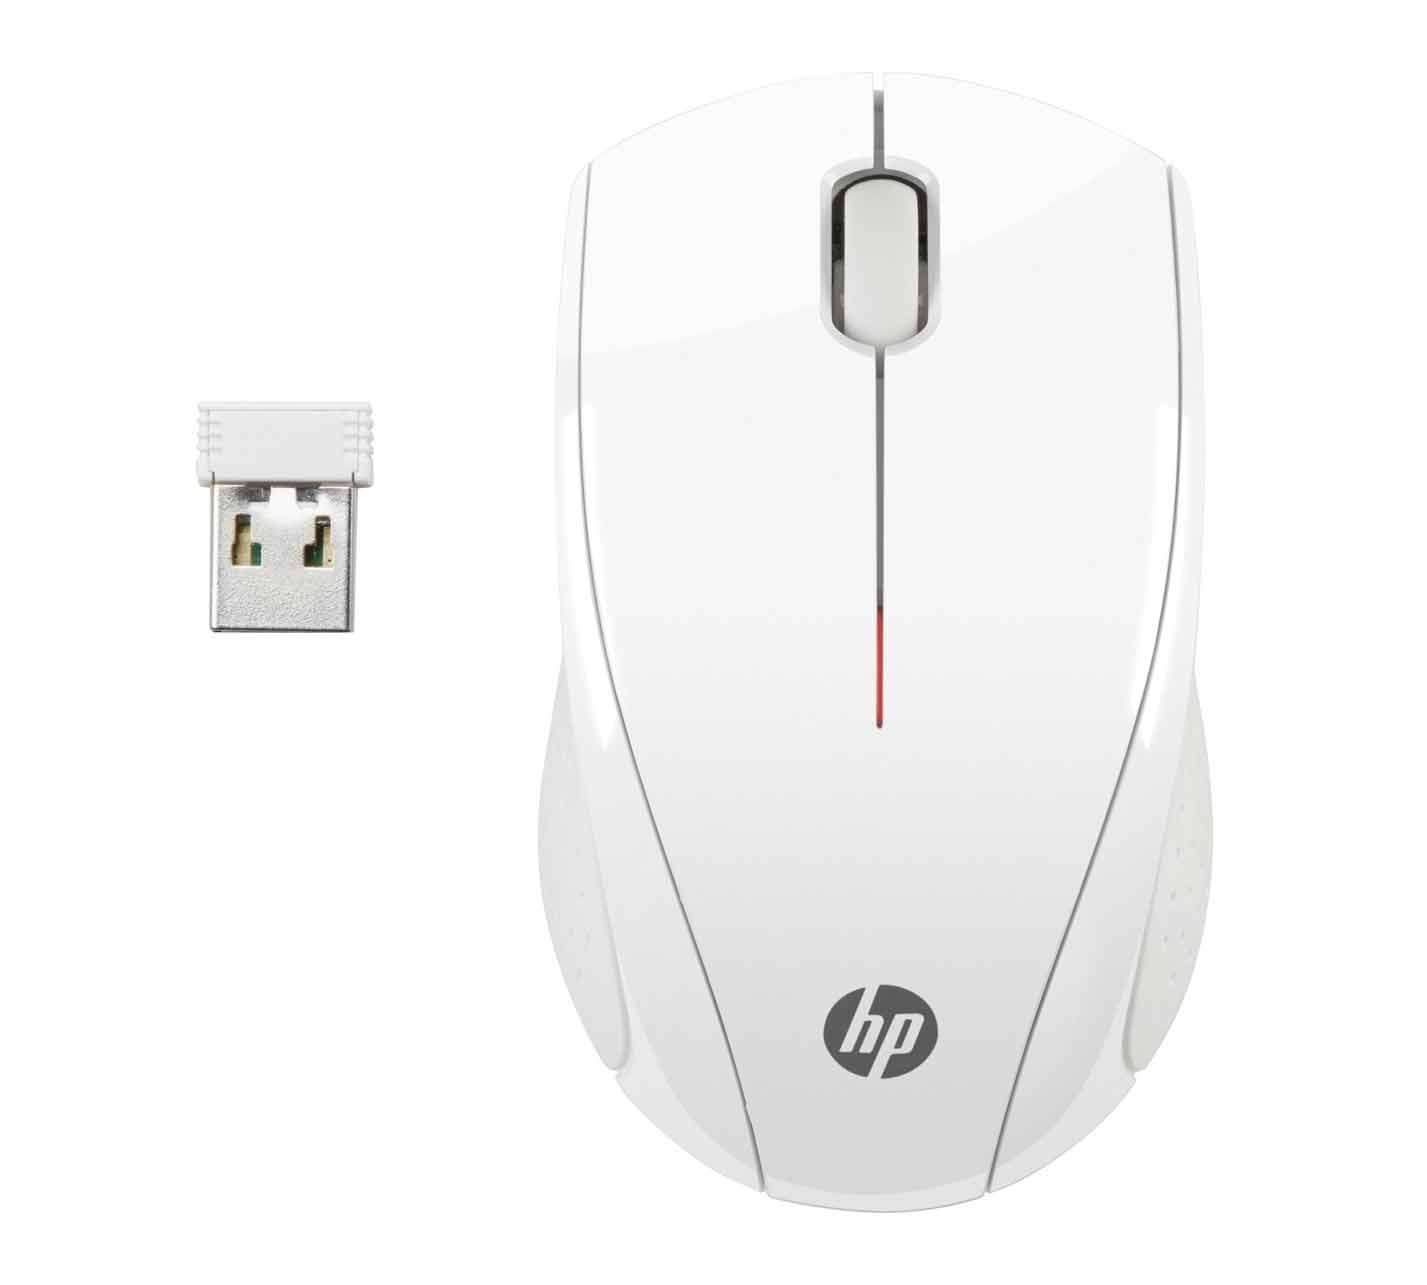 HP X3000 Wireless Optical Mobile Mouse White N4G64AA (Ασύρματο οπτικό ποντίκι)